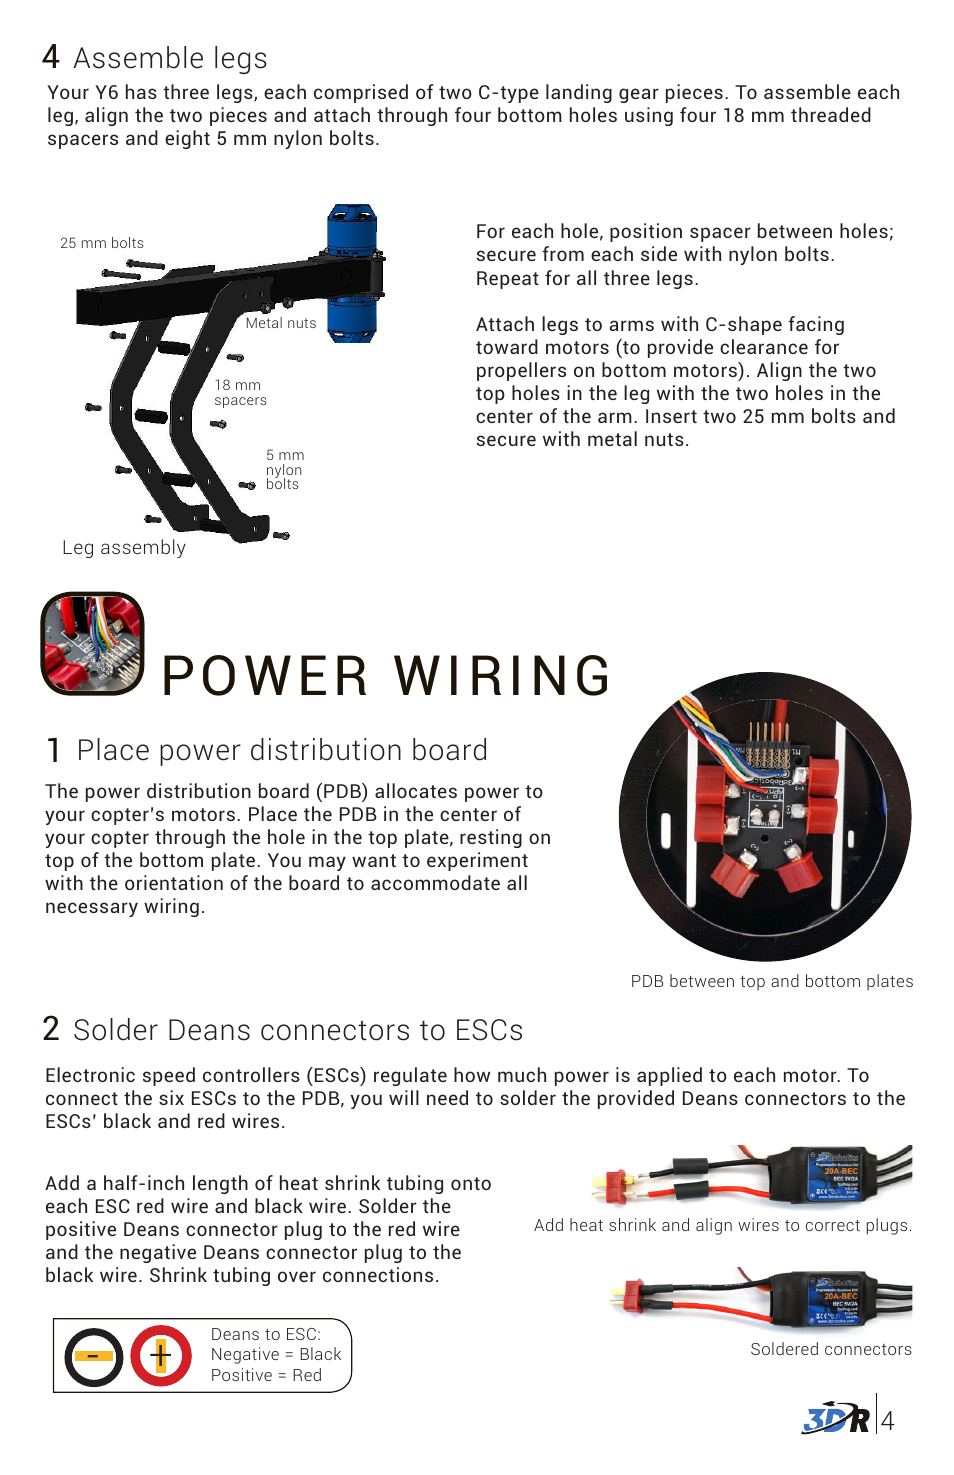 Power wiring, Place power distribution board, Solder deans